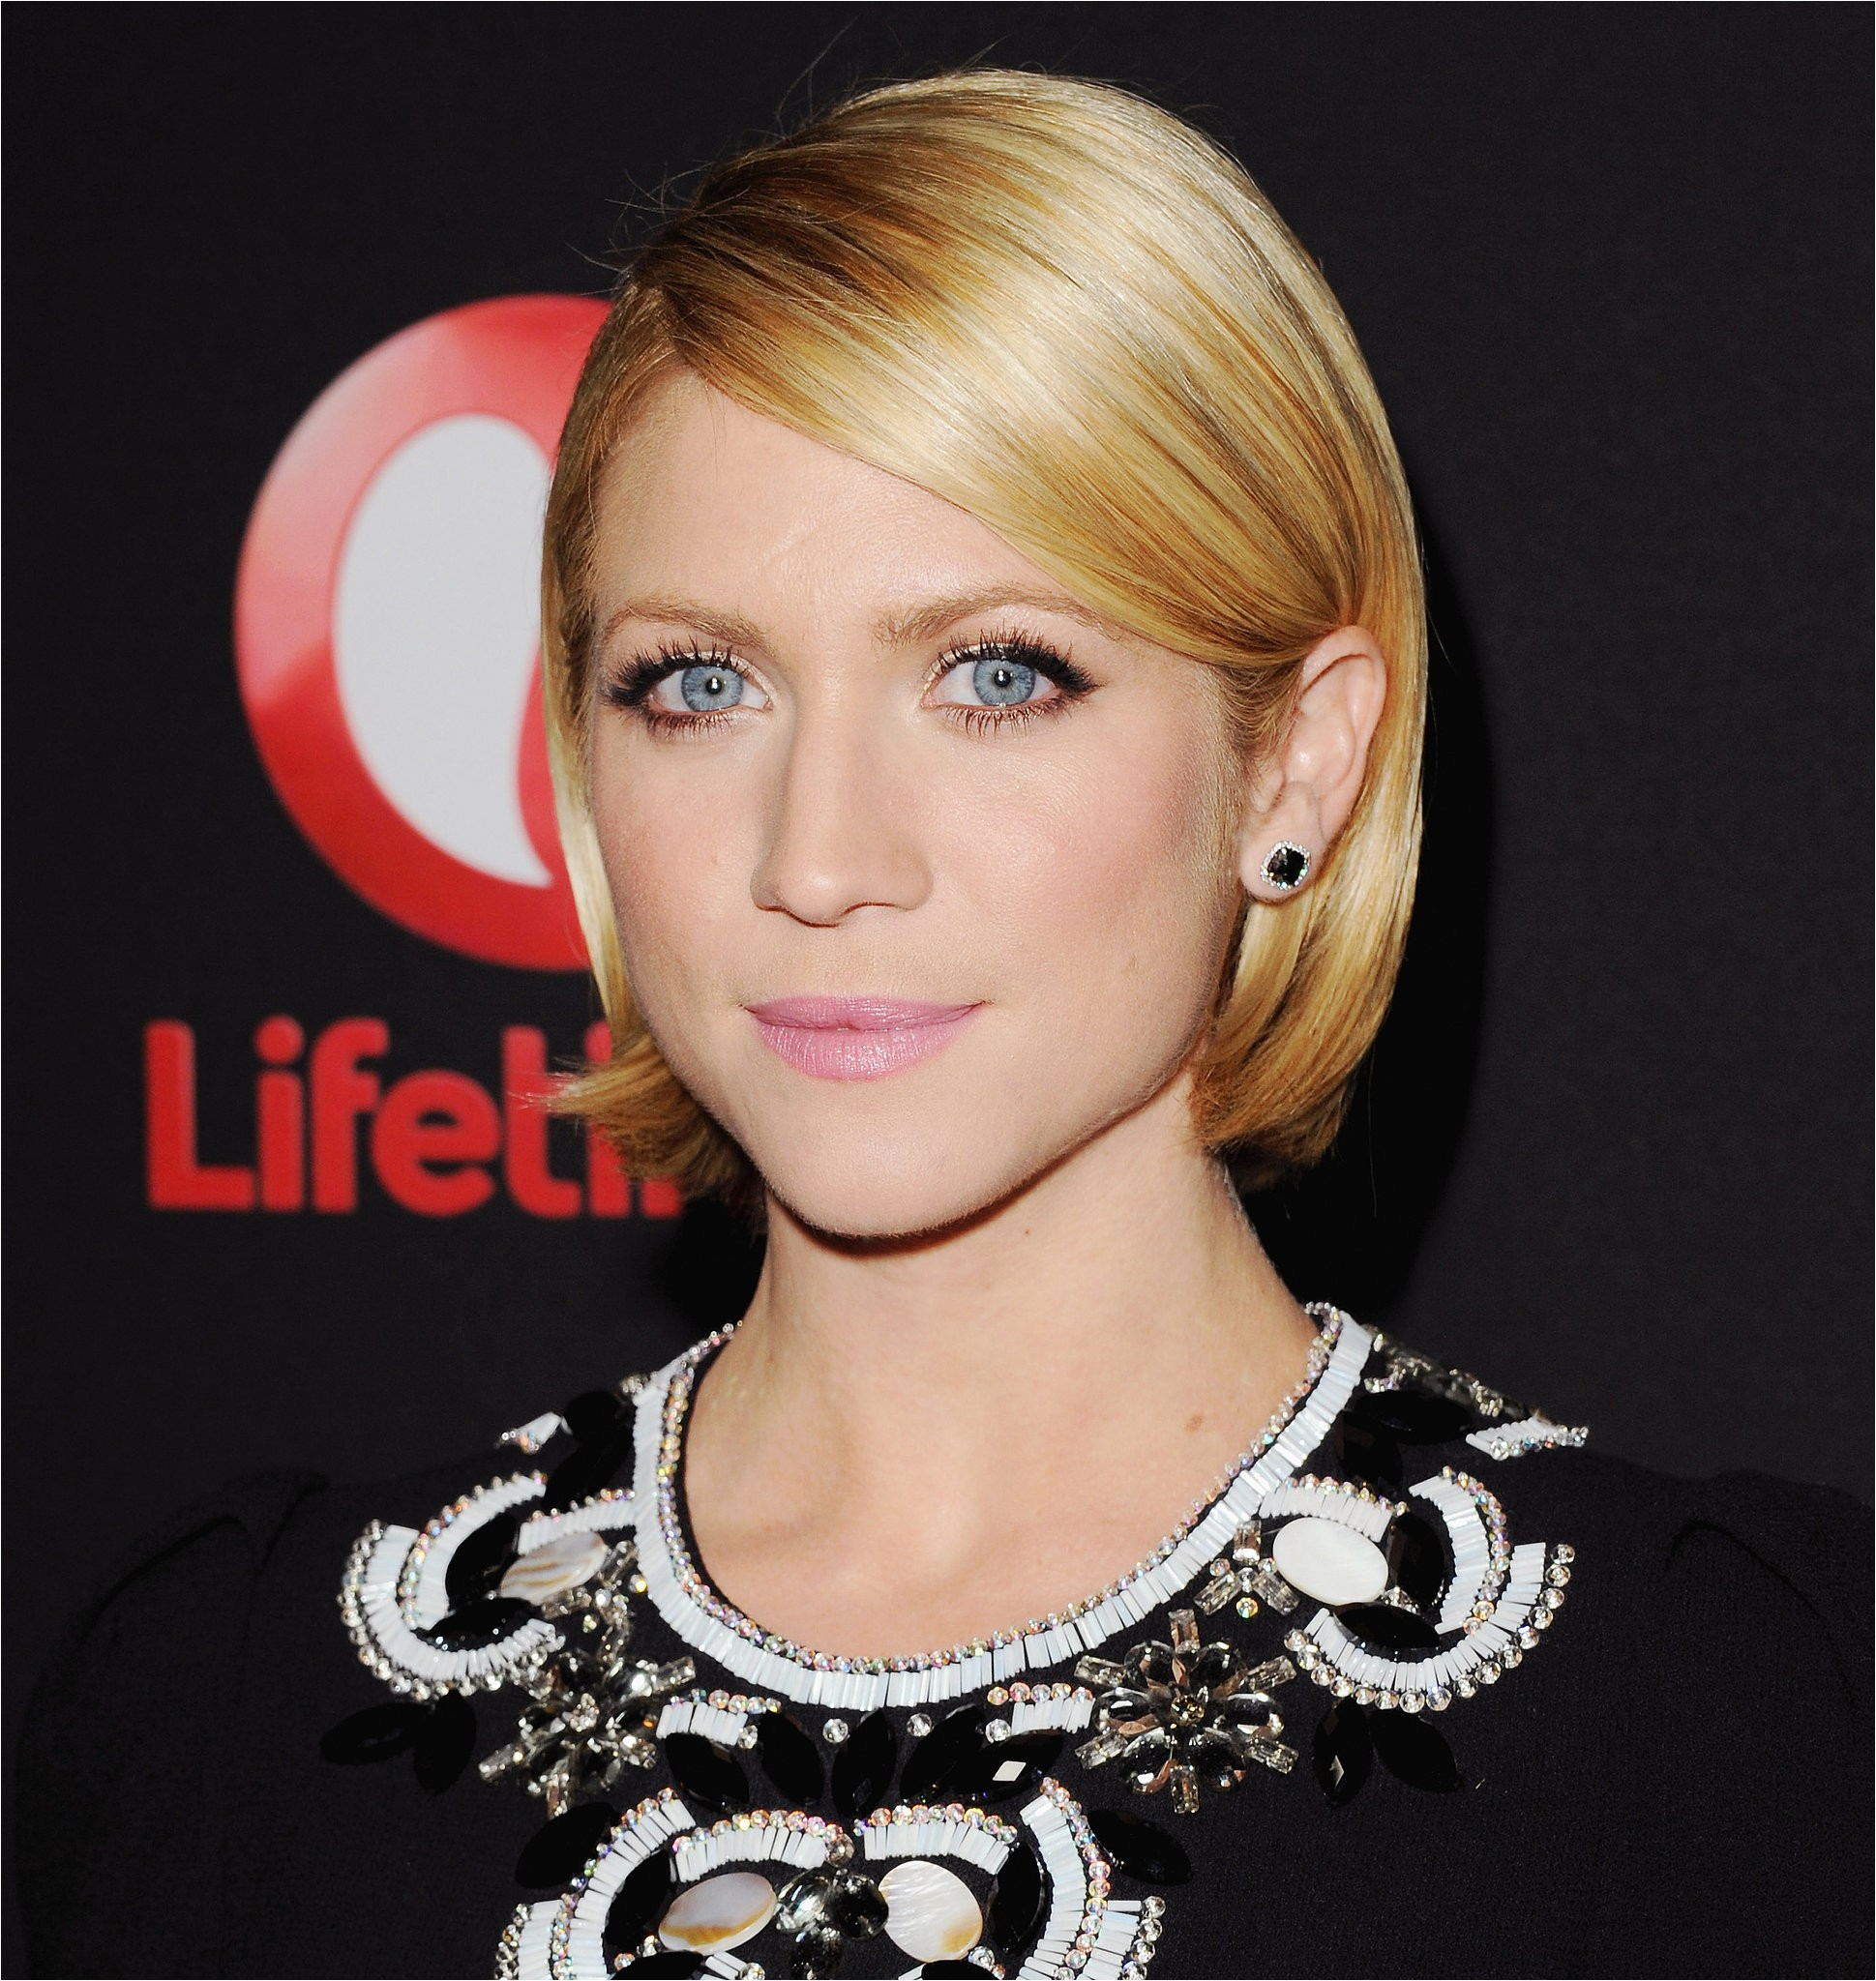 Bob Haircuts Tucked Behind Ears Brittany Snow Wore Her Bob Neatly Tucked Behind Her Ears